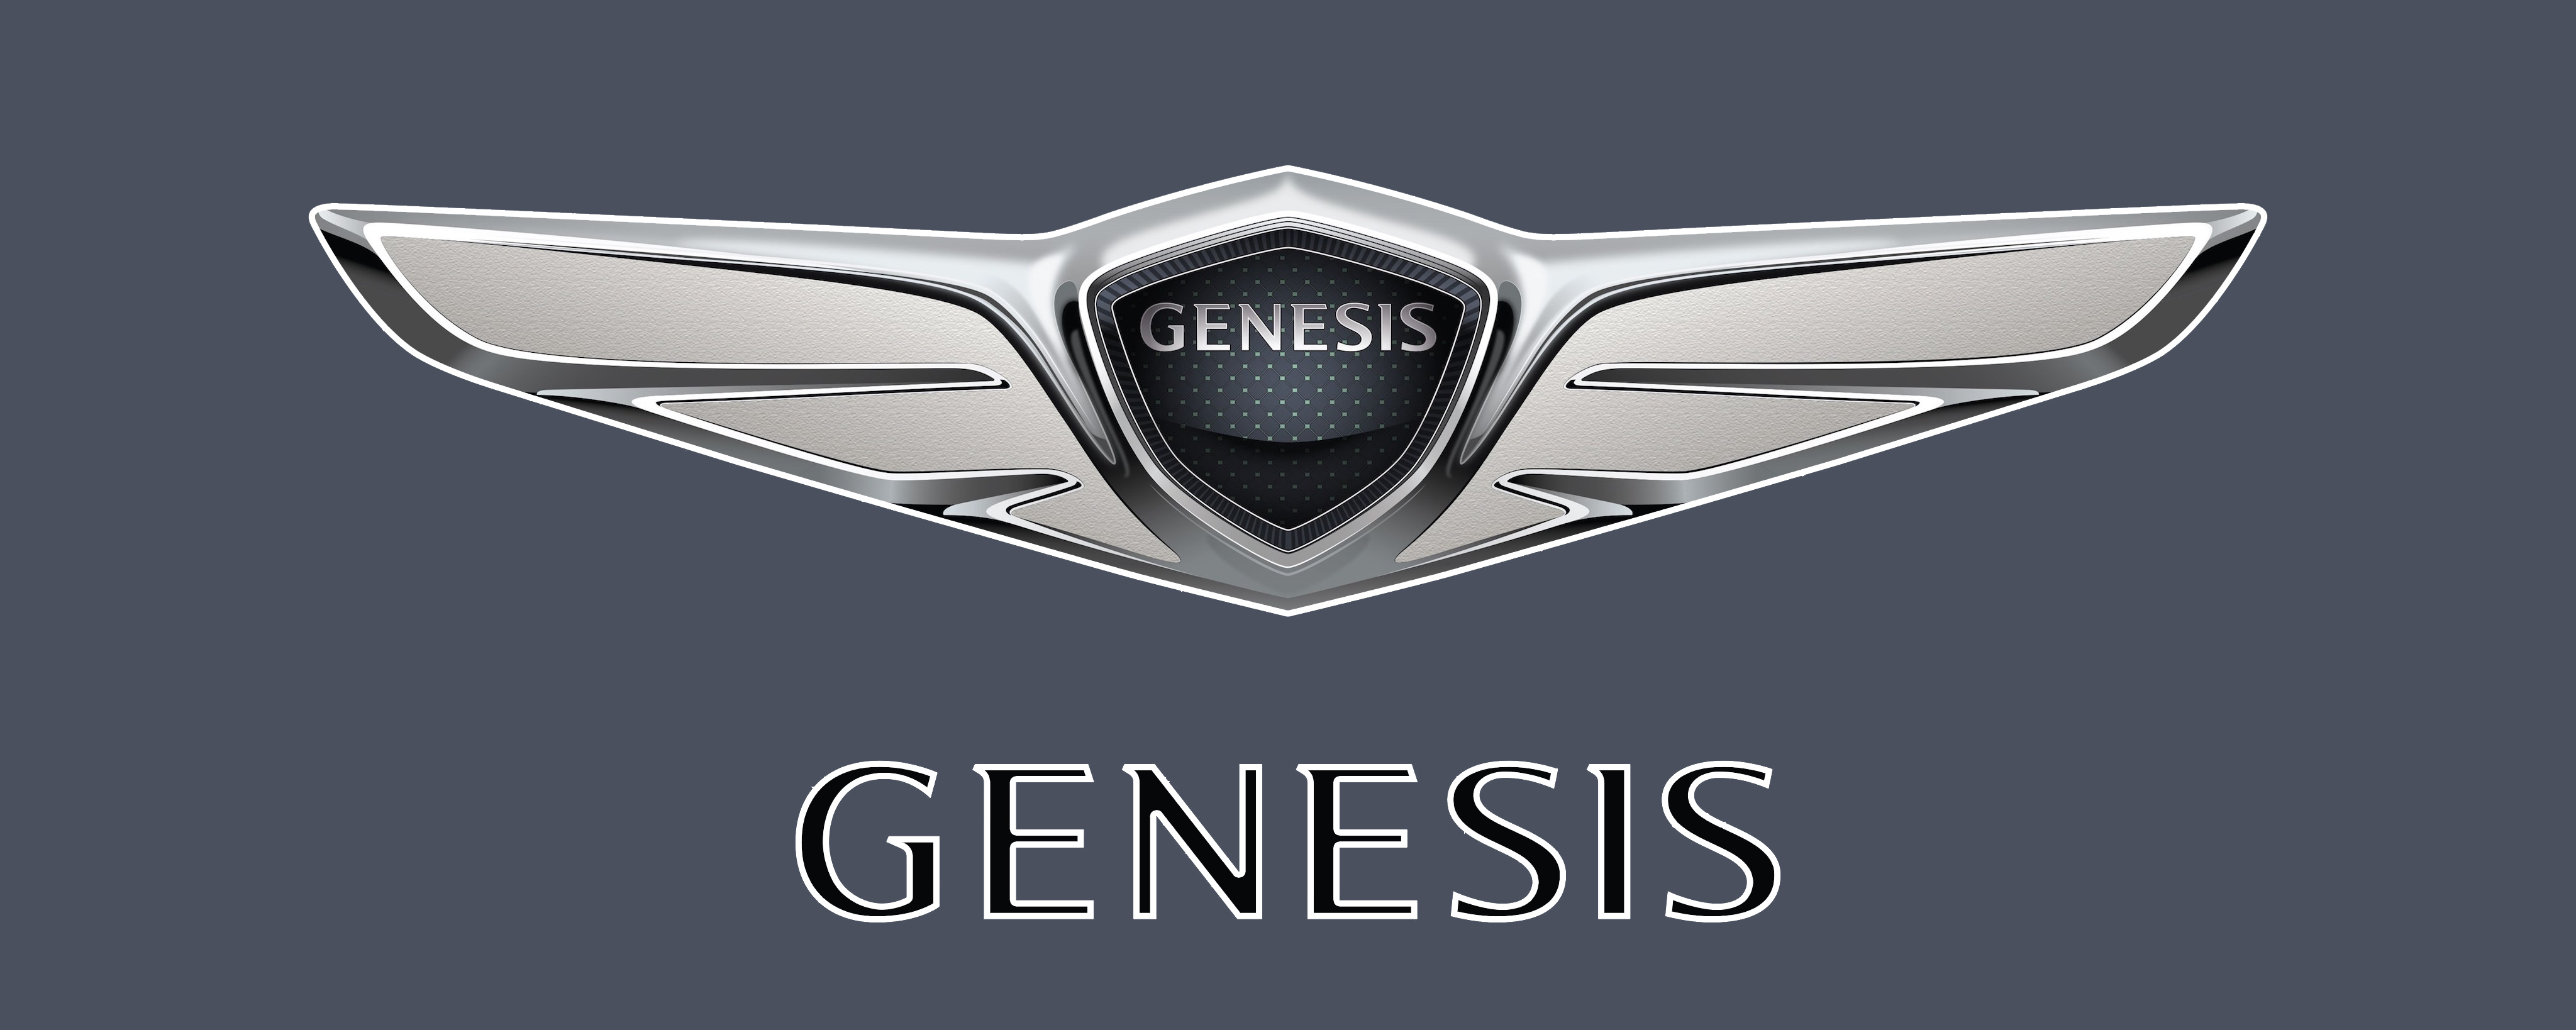 Genesis Logo Meaning And History Latest Models World Cars Brands